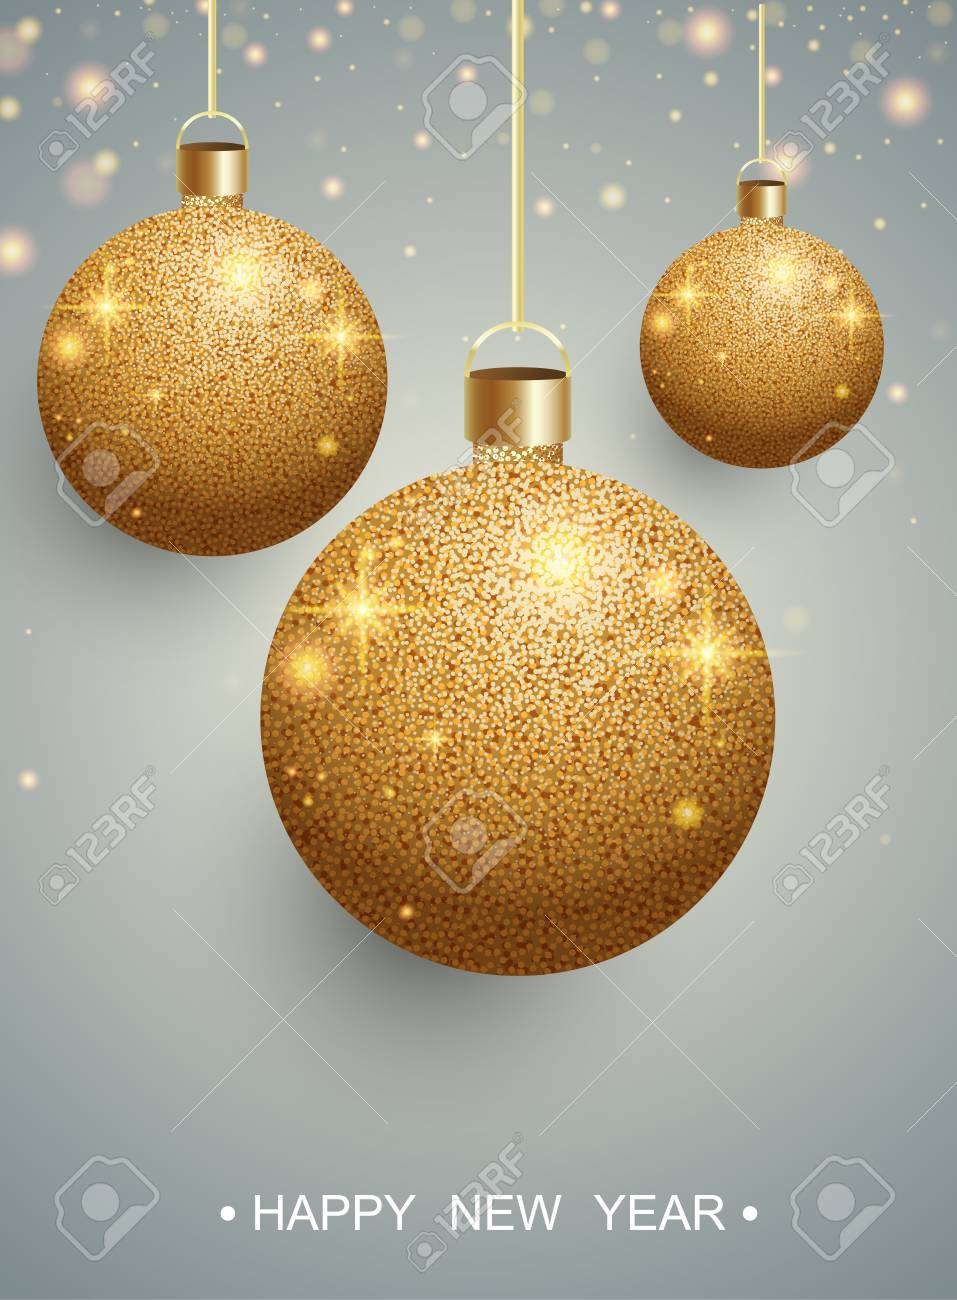 Happy New Year greeting card with gold shiny Christmas balls. Vector background. - 127702060